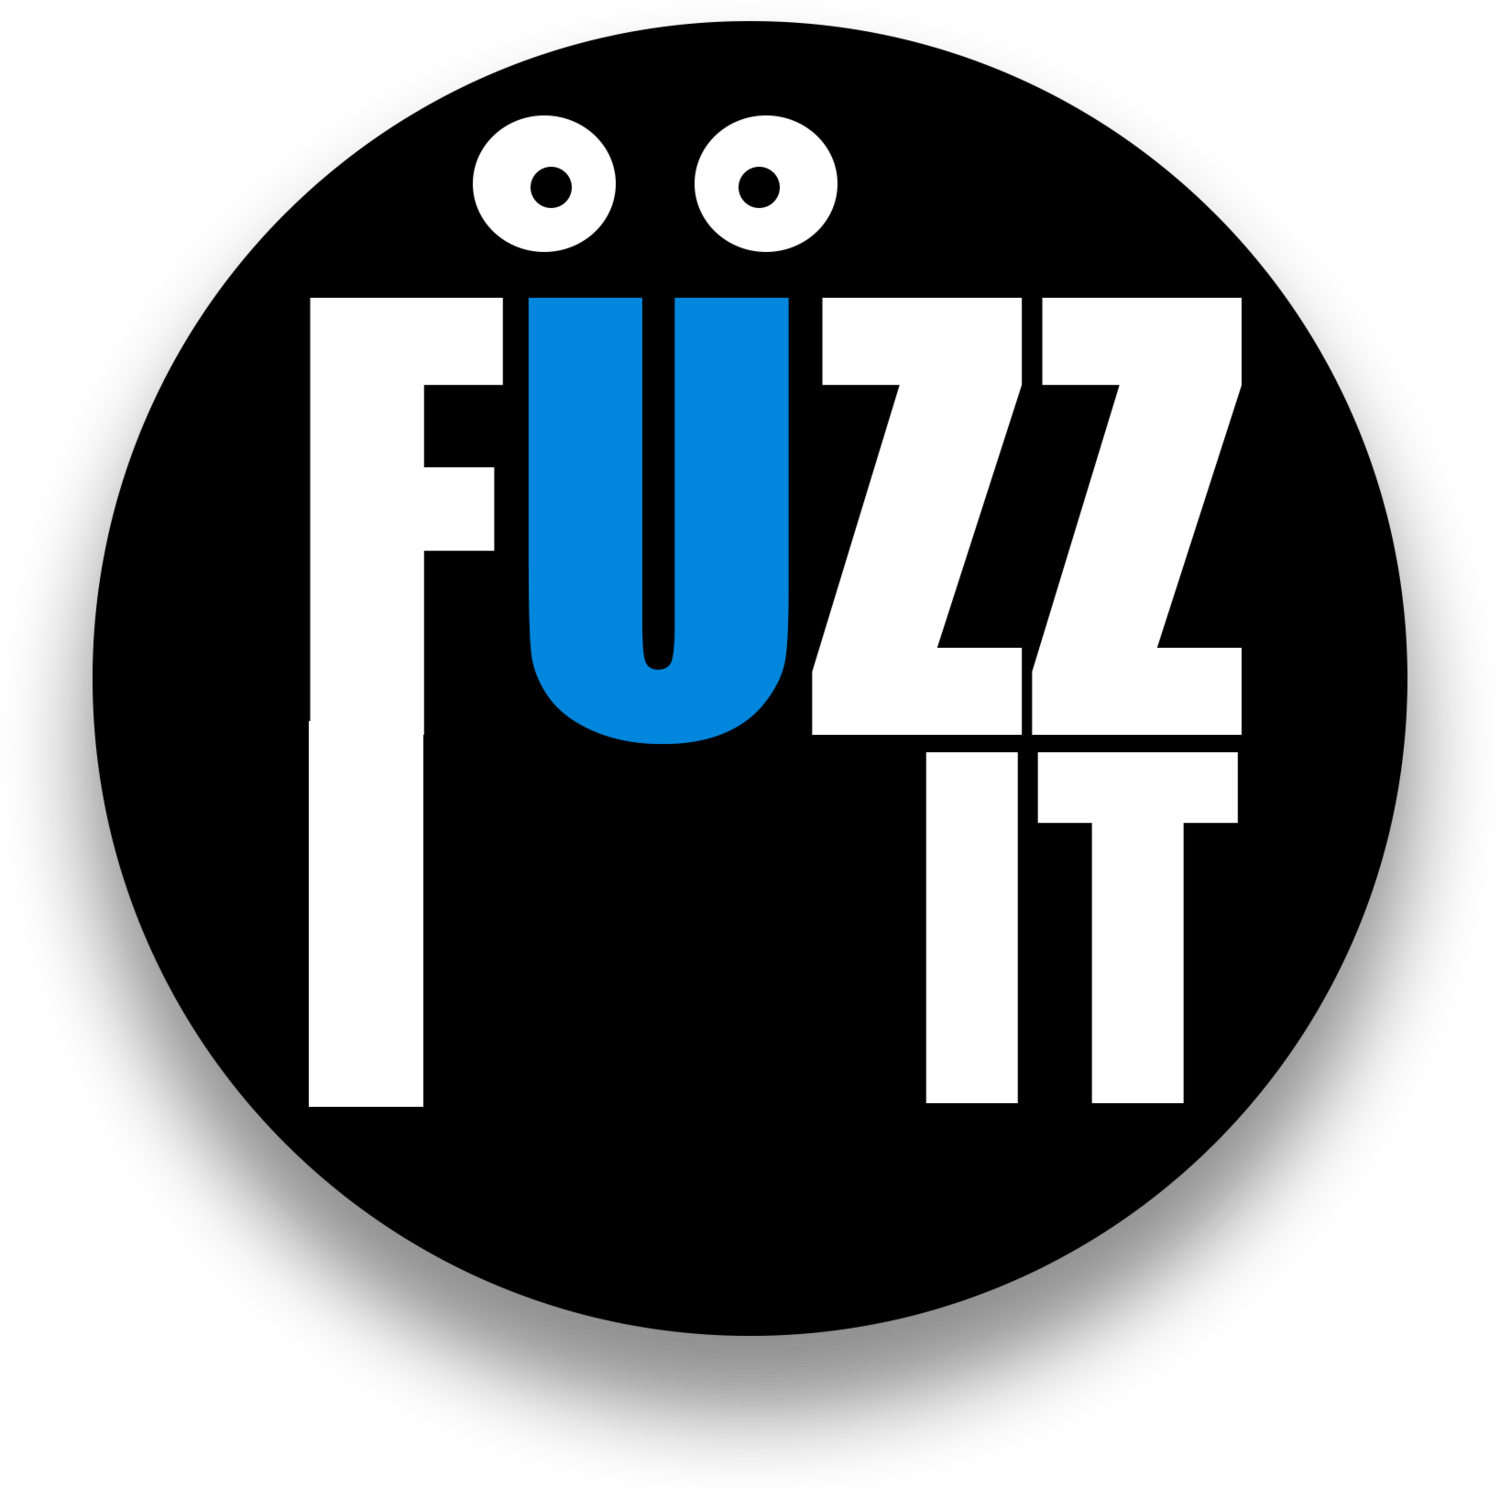 Contact Us Funny >> Contact Us Funny Blog Fuzz It Puppet